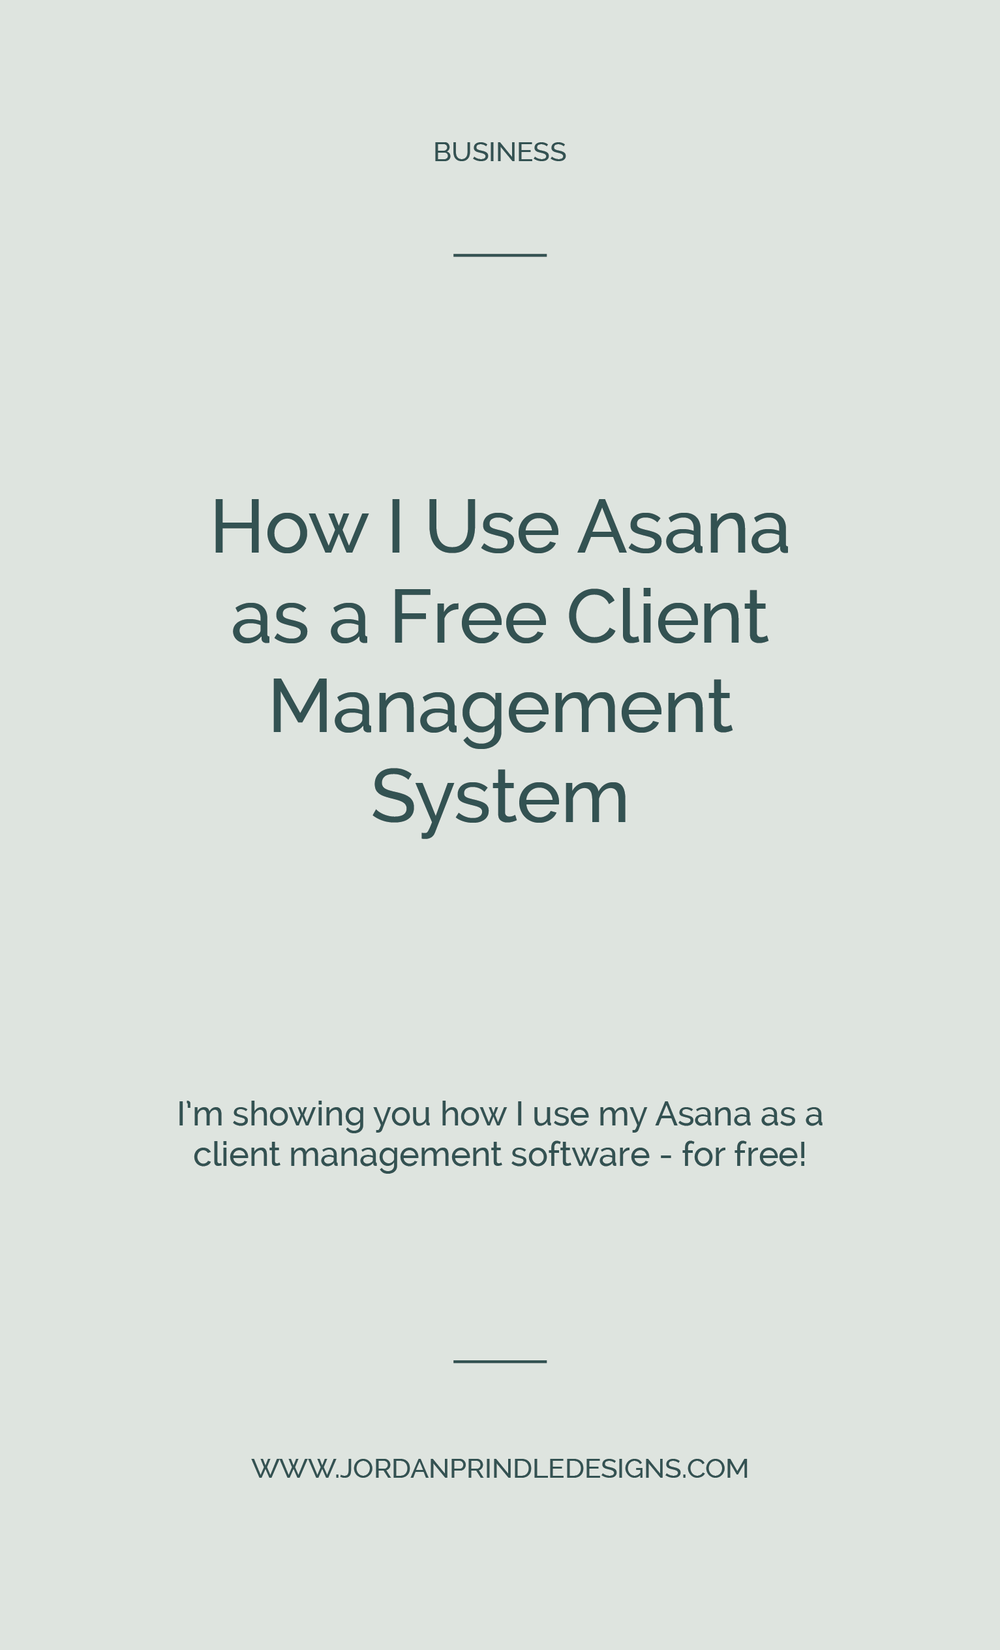 How I Use Asana as a  Client Management System | Finding a client management software that is easy to use, free and accesible to your clients can be hard. Luckily, Asana makes it easy. Read my tips at www.jordanprindledesigns.com #asanatips #businesstips #clientmanagement #logodesigner